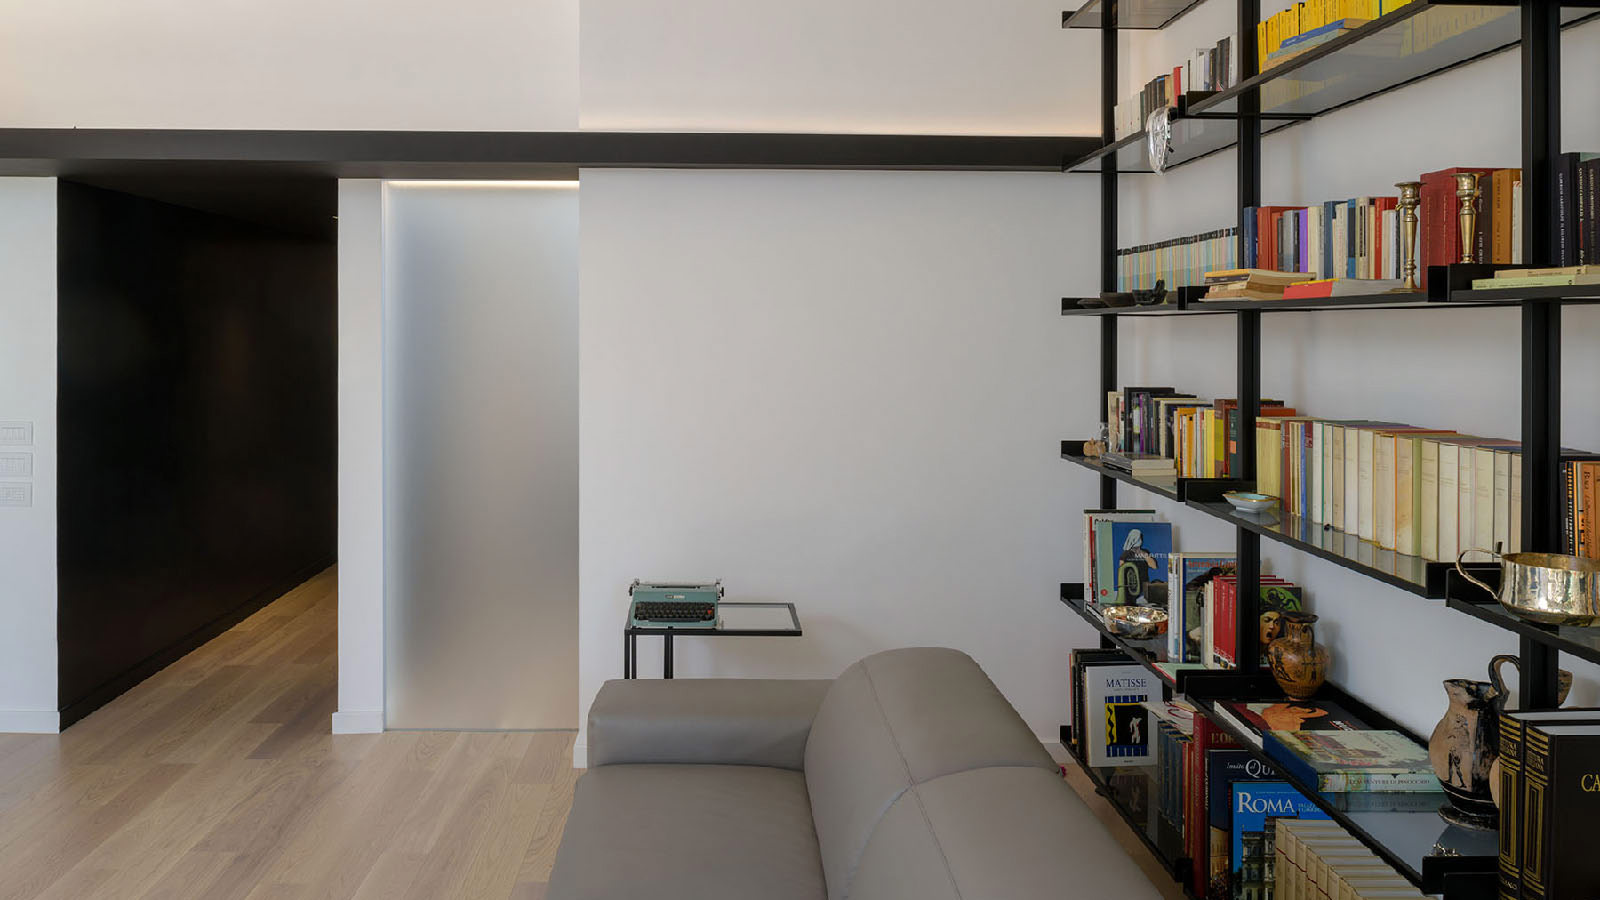 Porcelanosa Grupo Projects: a complete renovation in a single-family home in Rome